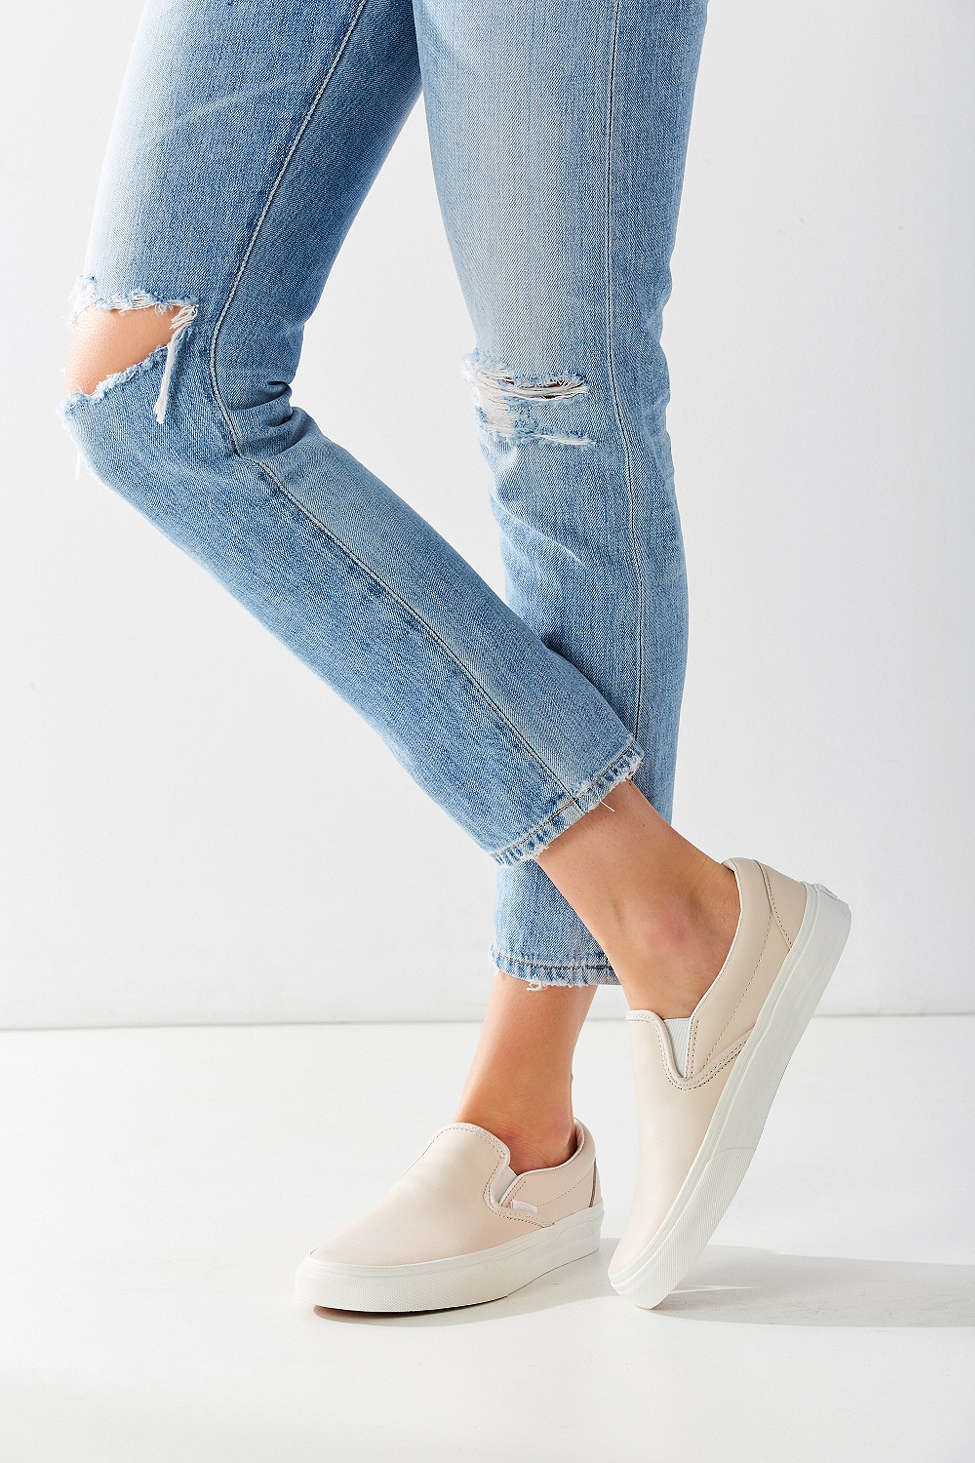 Vans Leather Classic Slip-on Sneaker in Cream (Natural) - Lyst